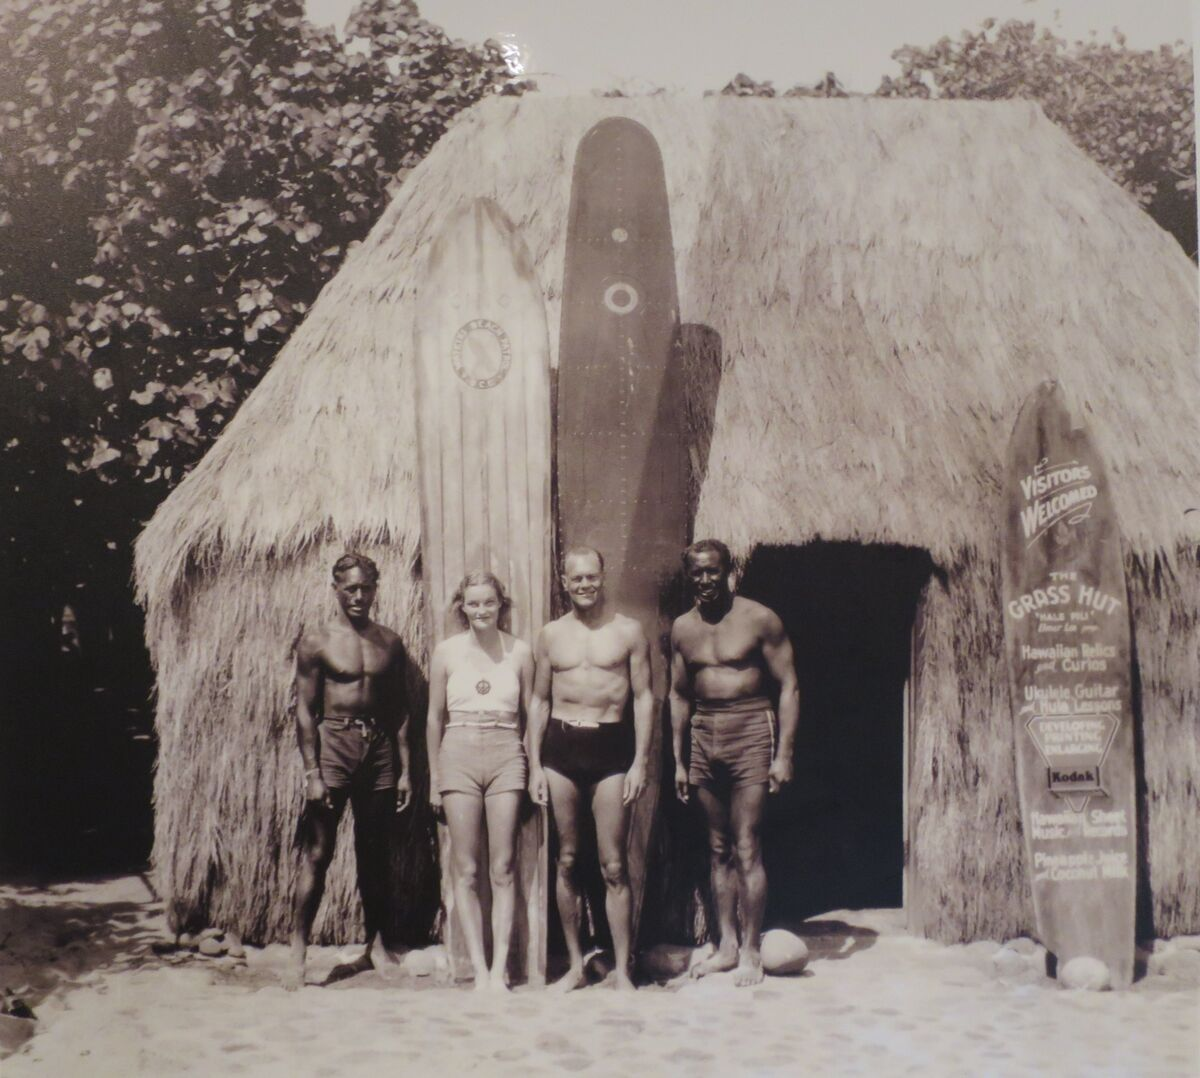 Sam Kahanamoku, Doris Duke, James Cromwell, and Chick Daniels in Waikiki. Photo via Wikimedia Commons.